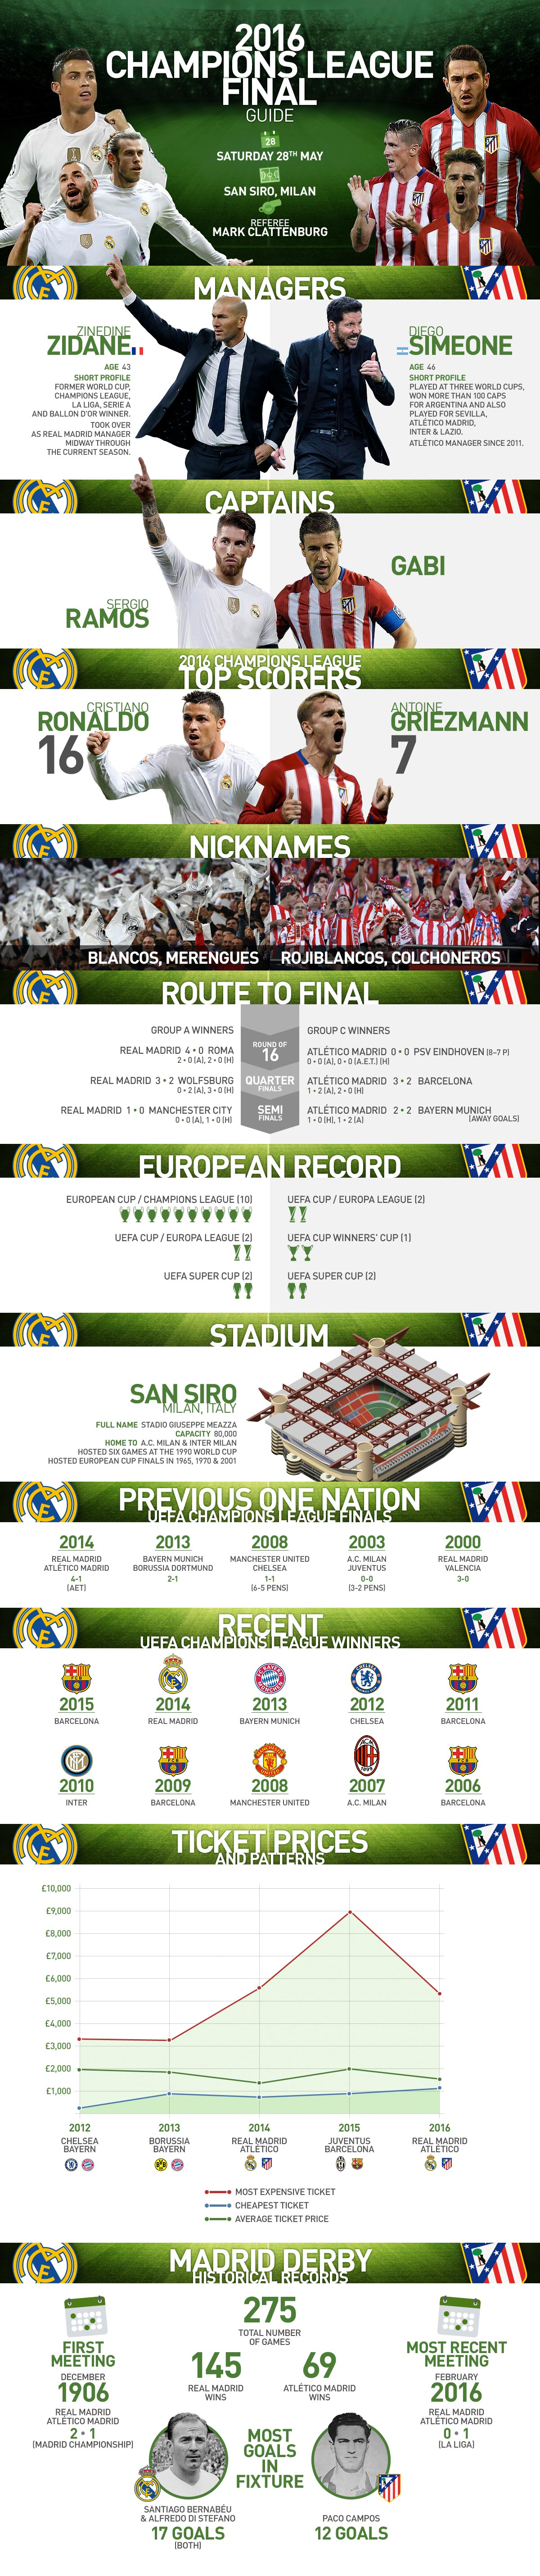 A full breakdown of the tie between Real Madrid and Atletico Madrid